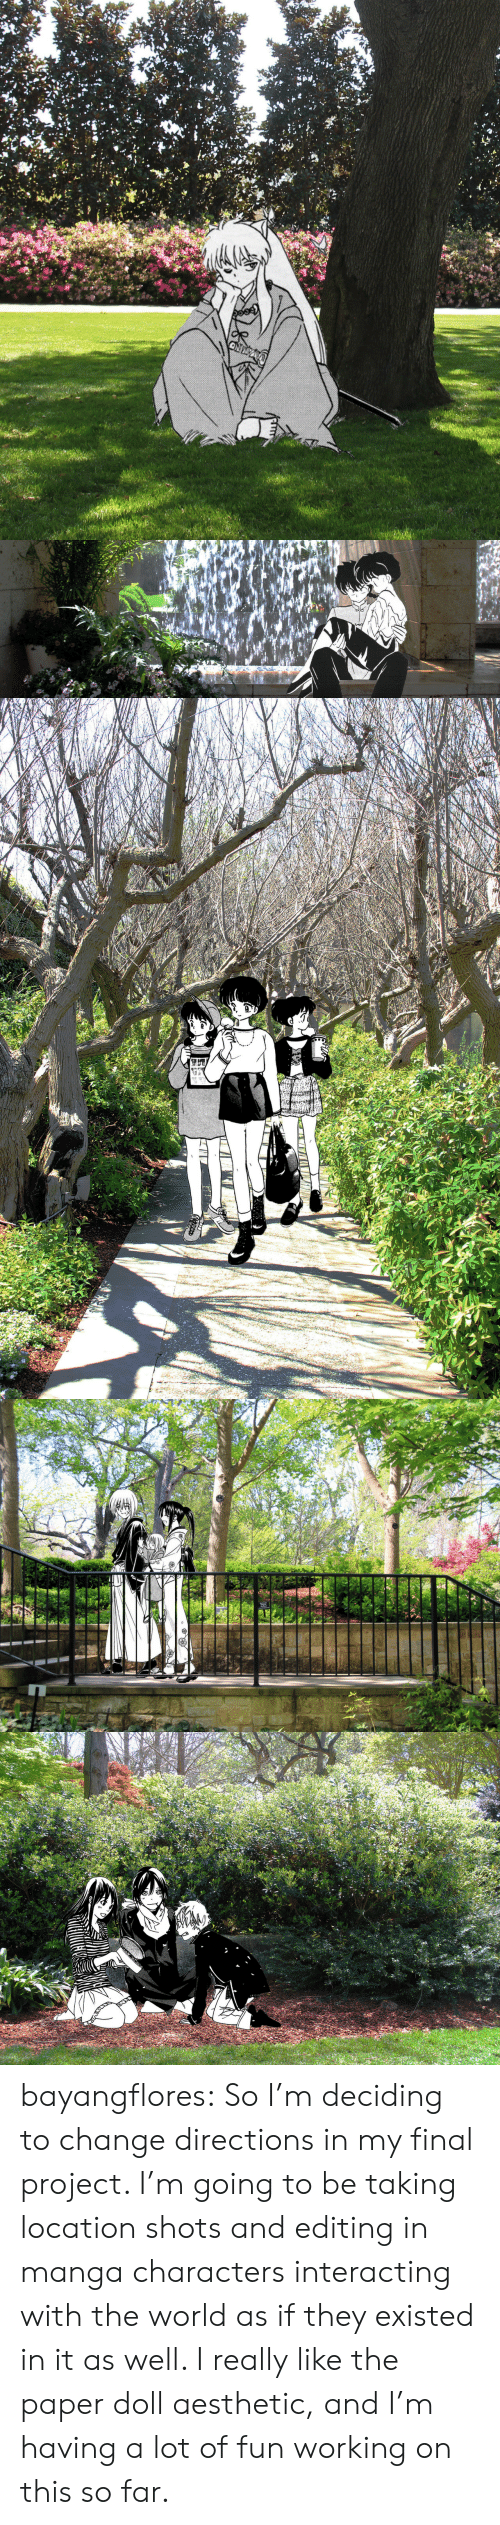 Target, Tumblr, and Aesthetic: ONLY   www bayangflores:  So I'm deciding to change directions in my final project. I'm going to be taking location shots and editing in manga characters interacting with the world as if they existed in it as well. I really like the paper doll aesthetic, and I'm having a lot of fun working on this so far.